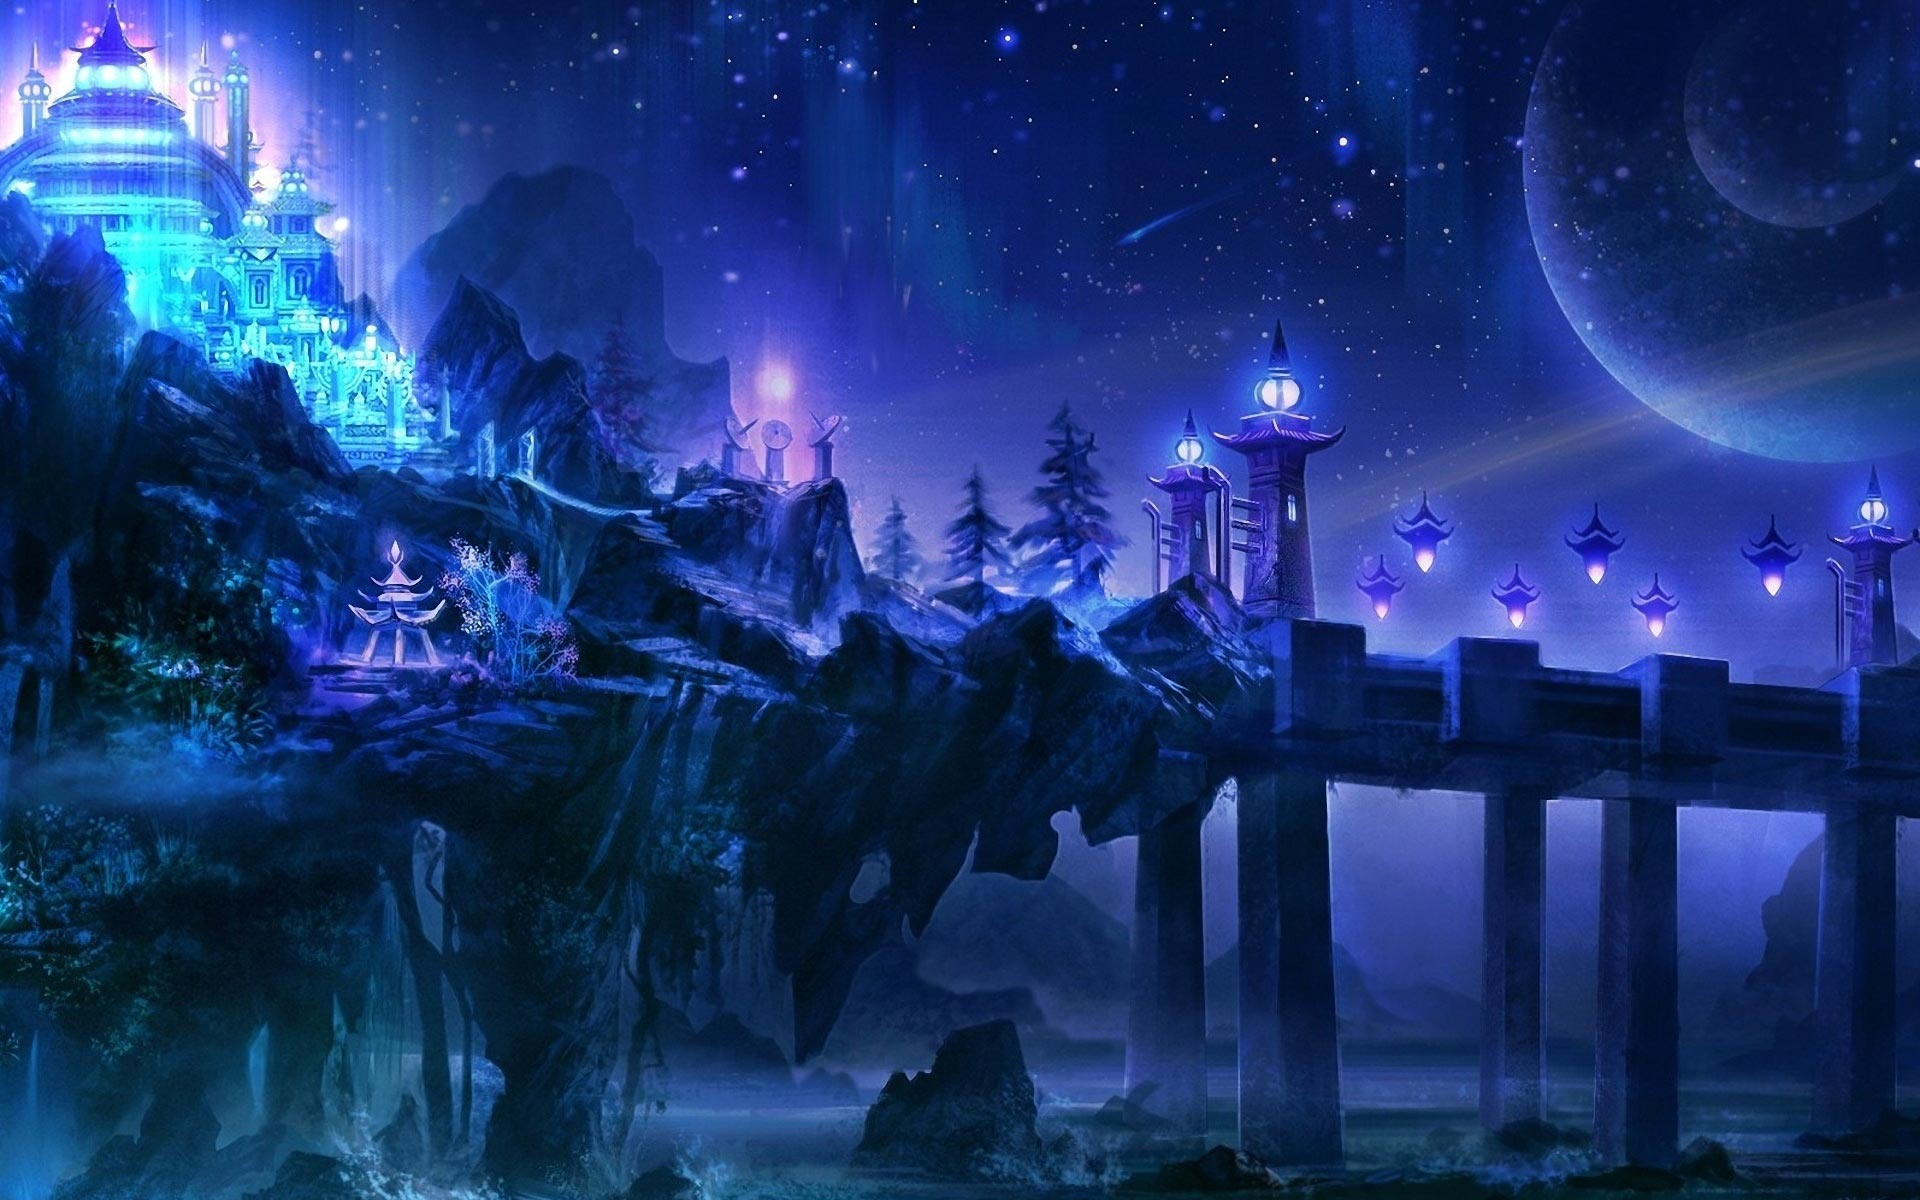 Fantasy Landscape Wallpapers 1920x1080   Share Online 1920x1200